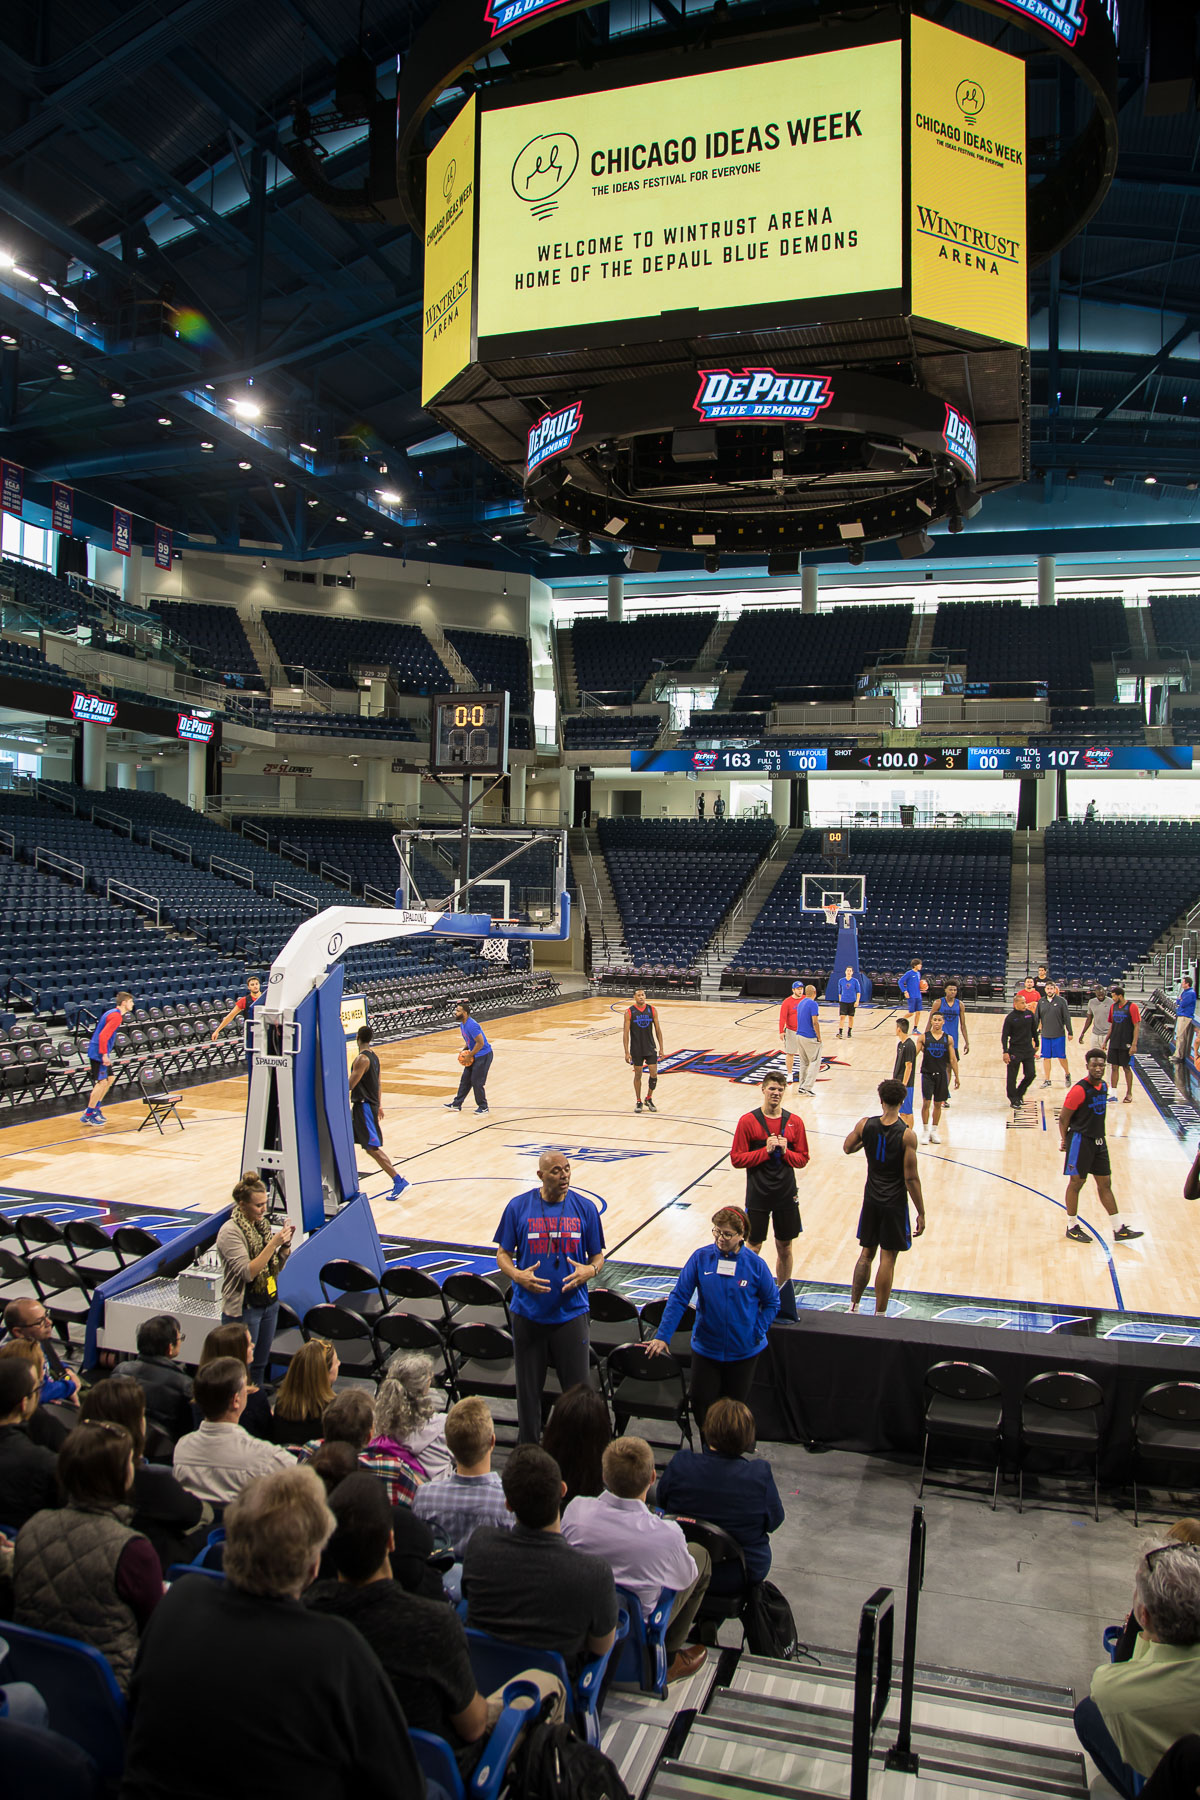 Dave Leitao, men's basketball head coach, talks about the impact the new arena will have on DePaul basketball in the future. (DePaul University/Jeff Carrion)